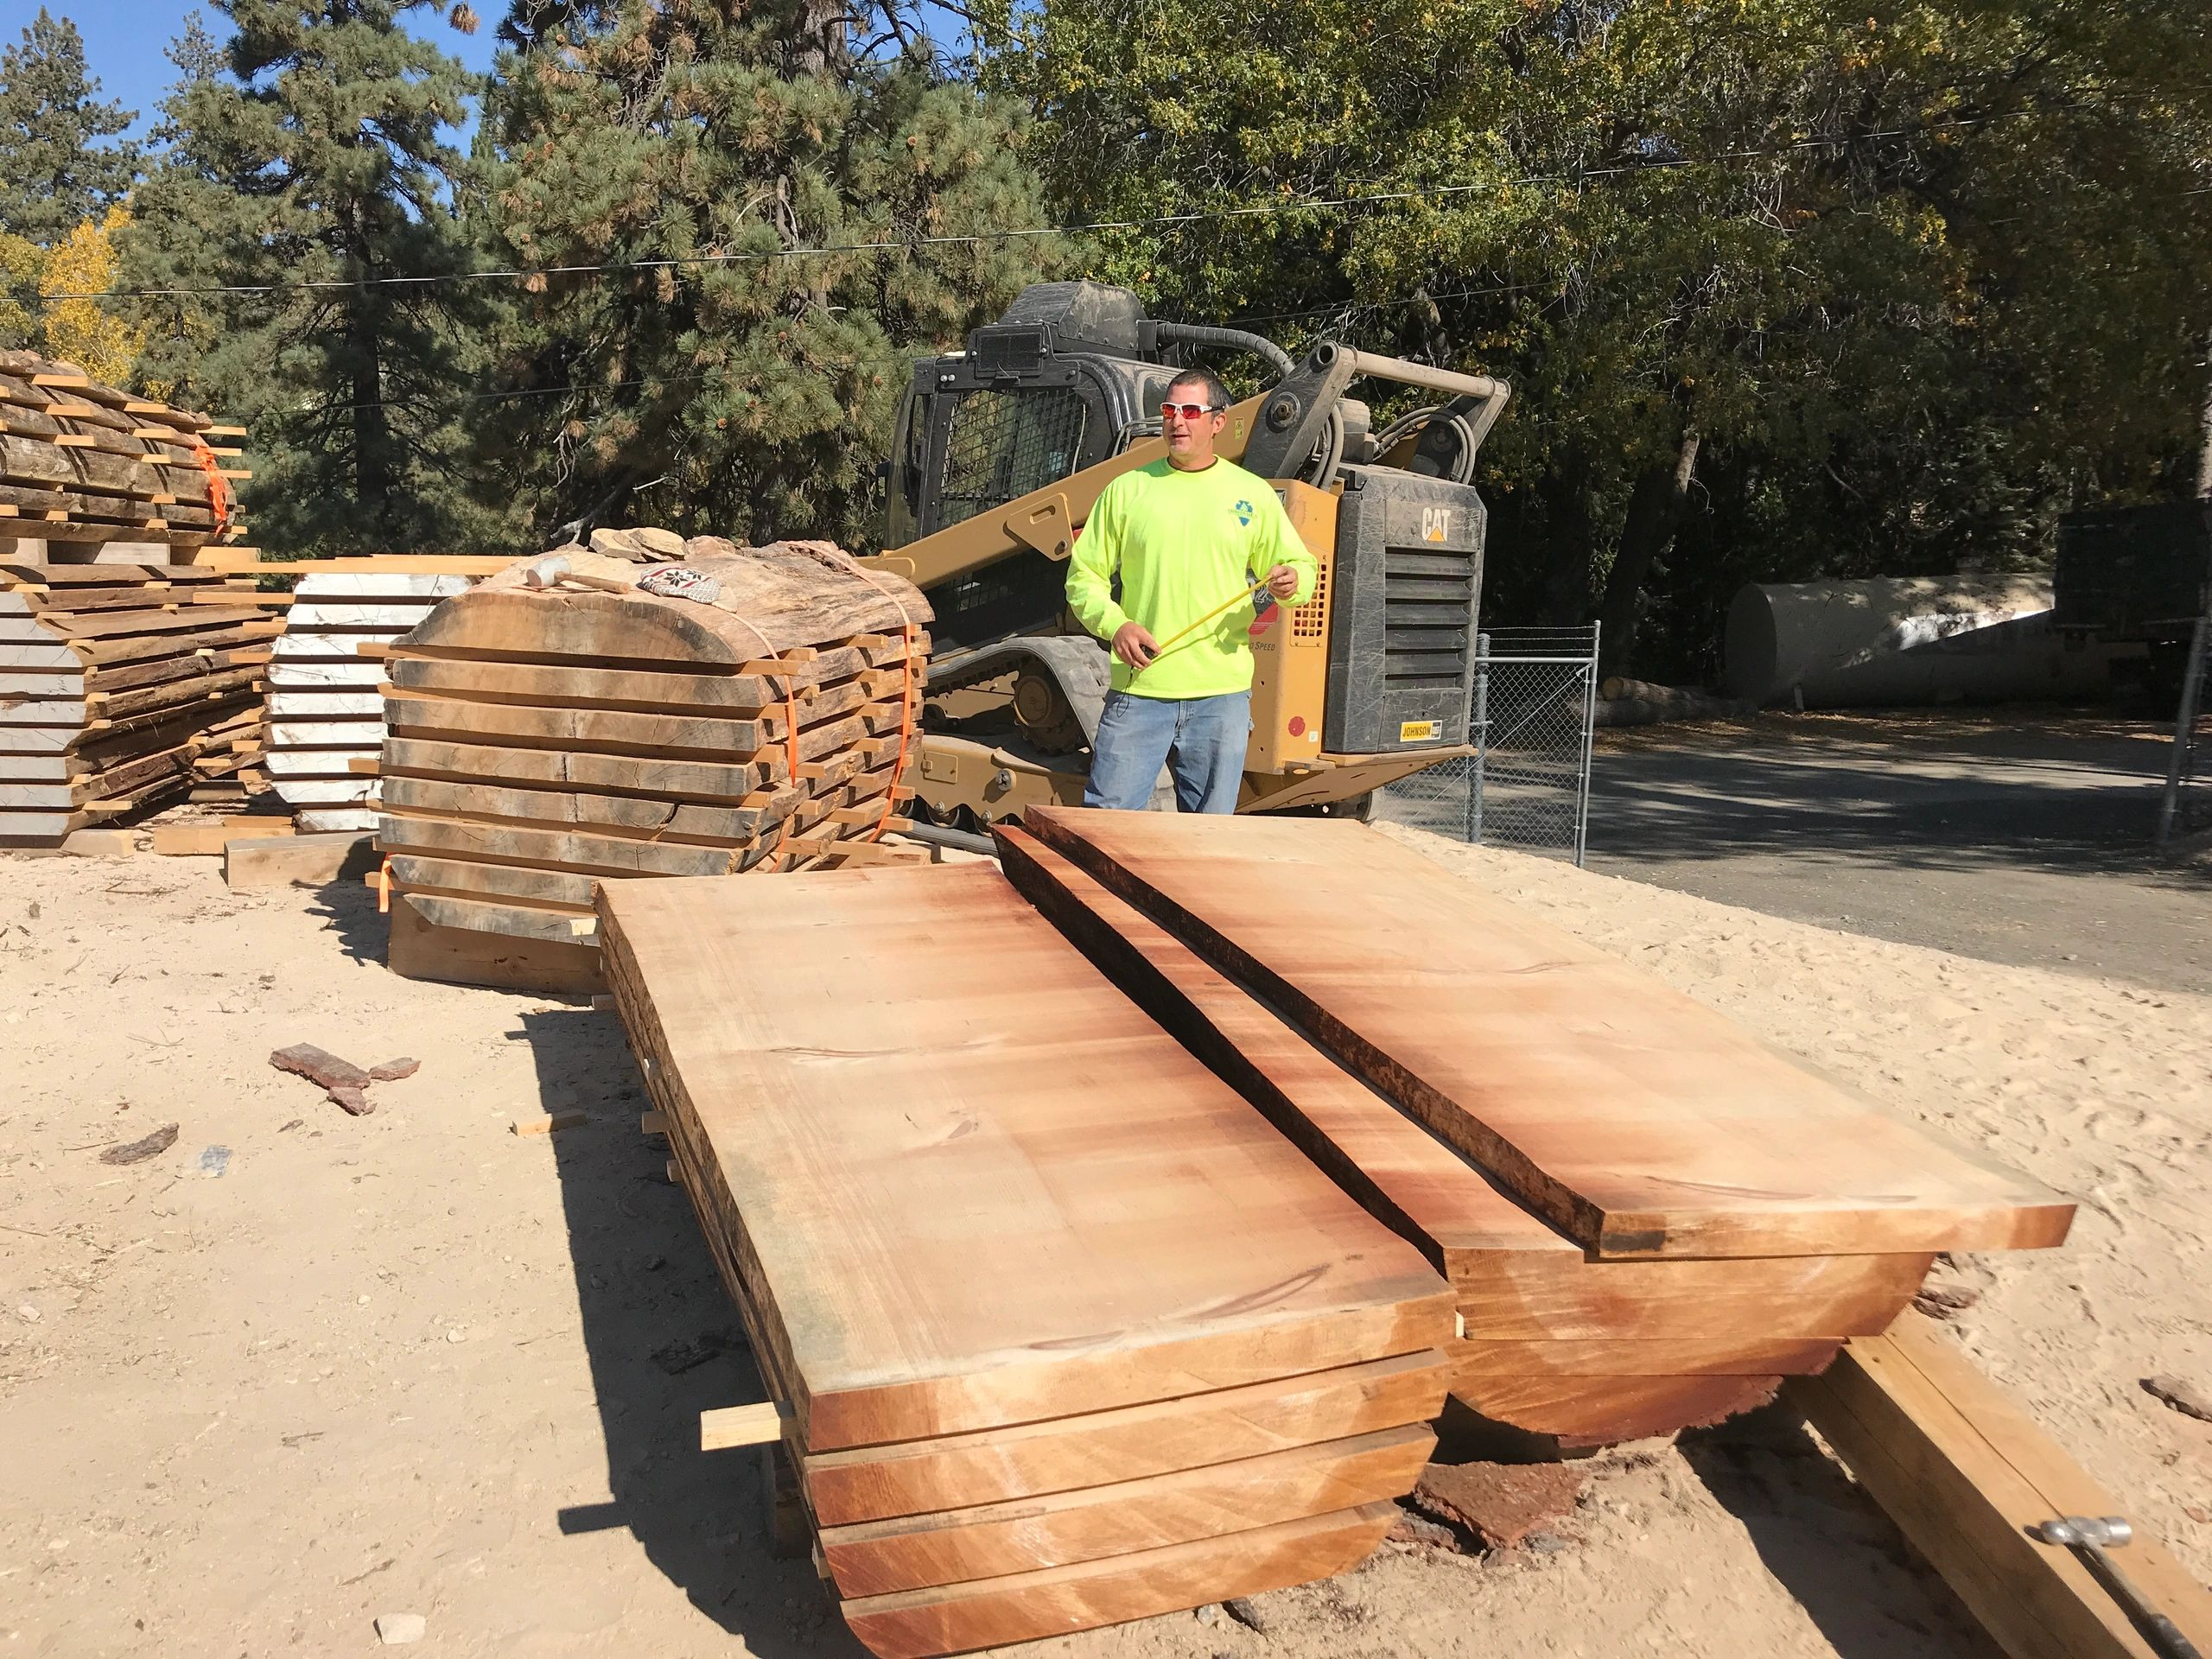 four square lumber mill • four square edges • fewer defects top choice is lowe's exclusive mark of quality lumber hand selected at the mill to be square.